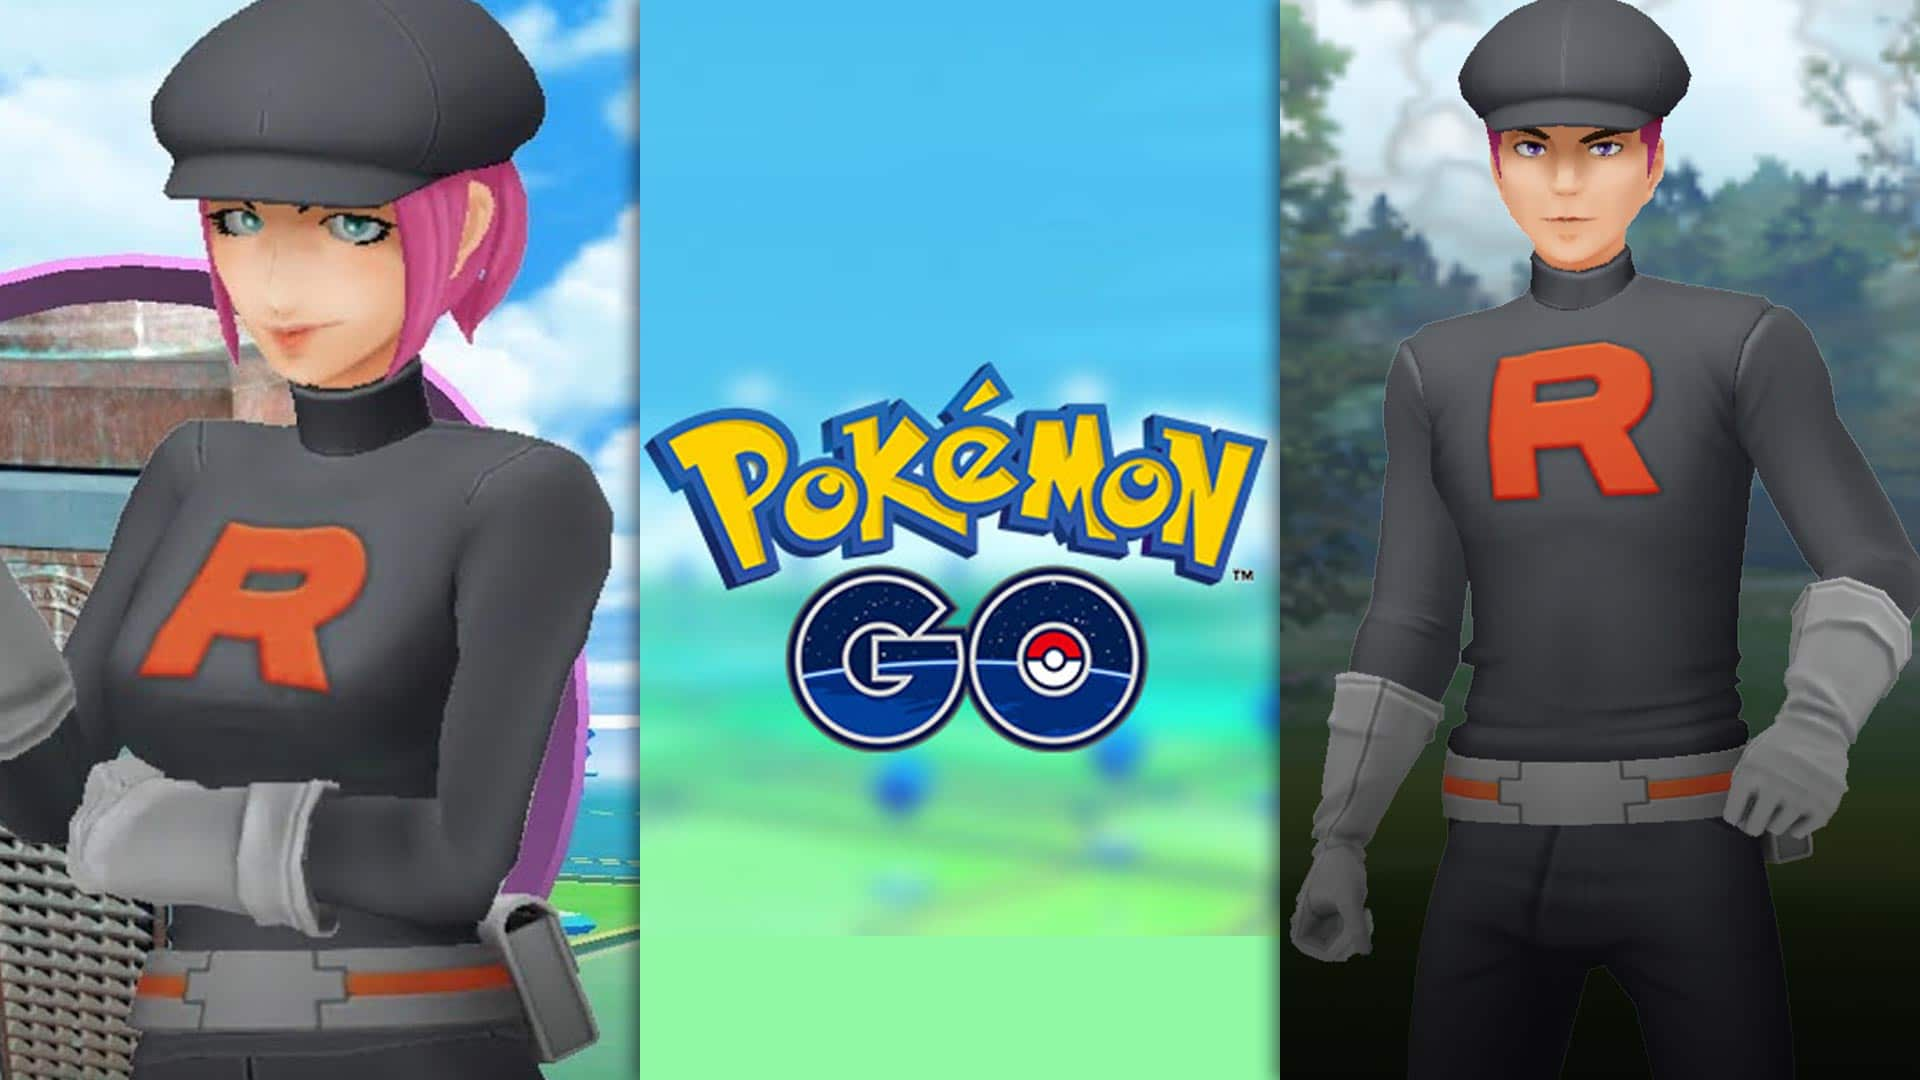 The Pokémon GO Team Rocket Invasion event is now live